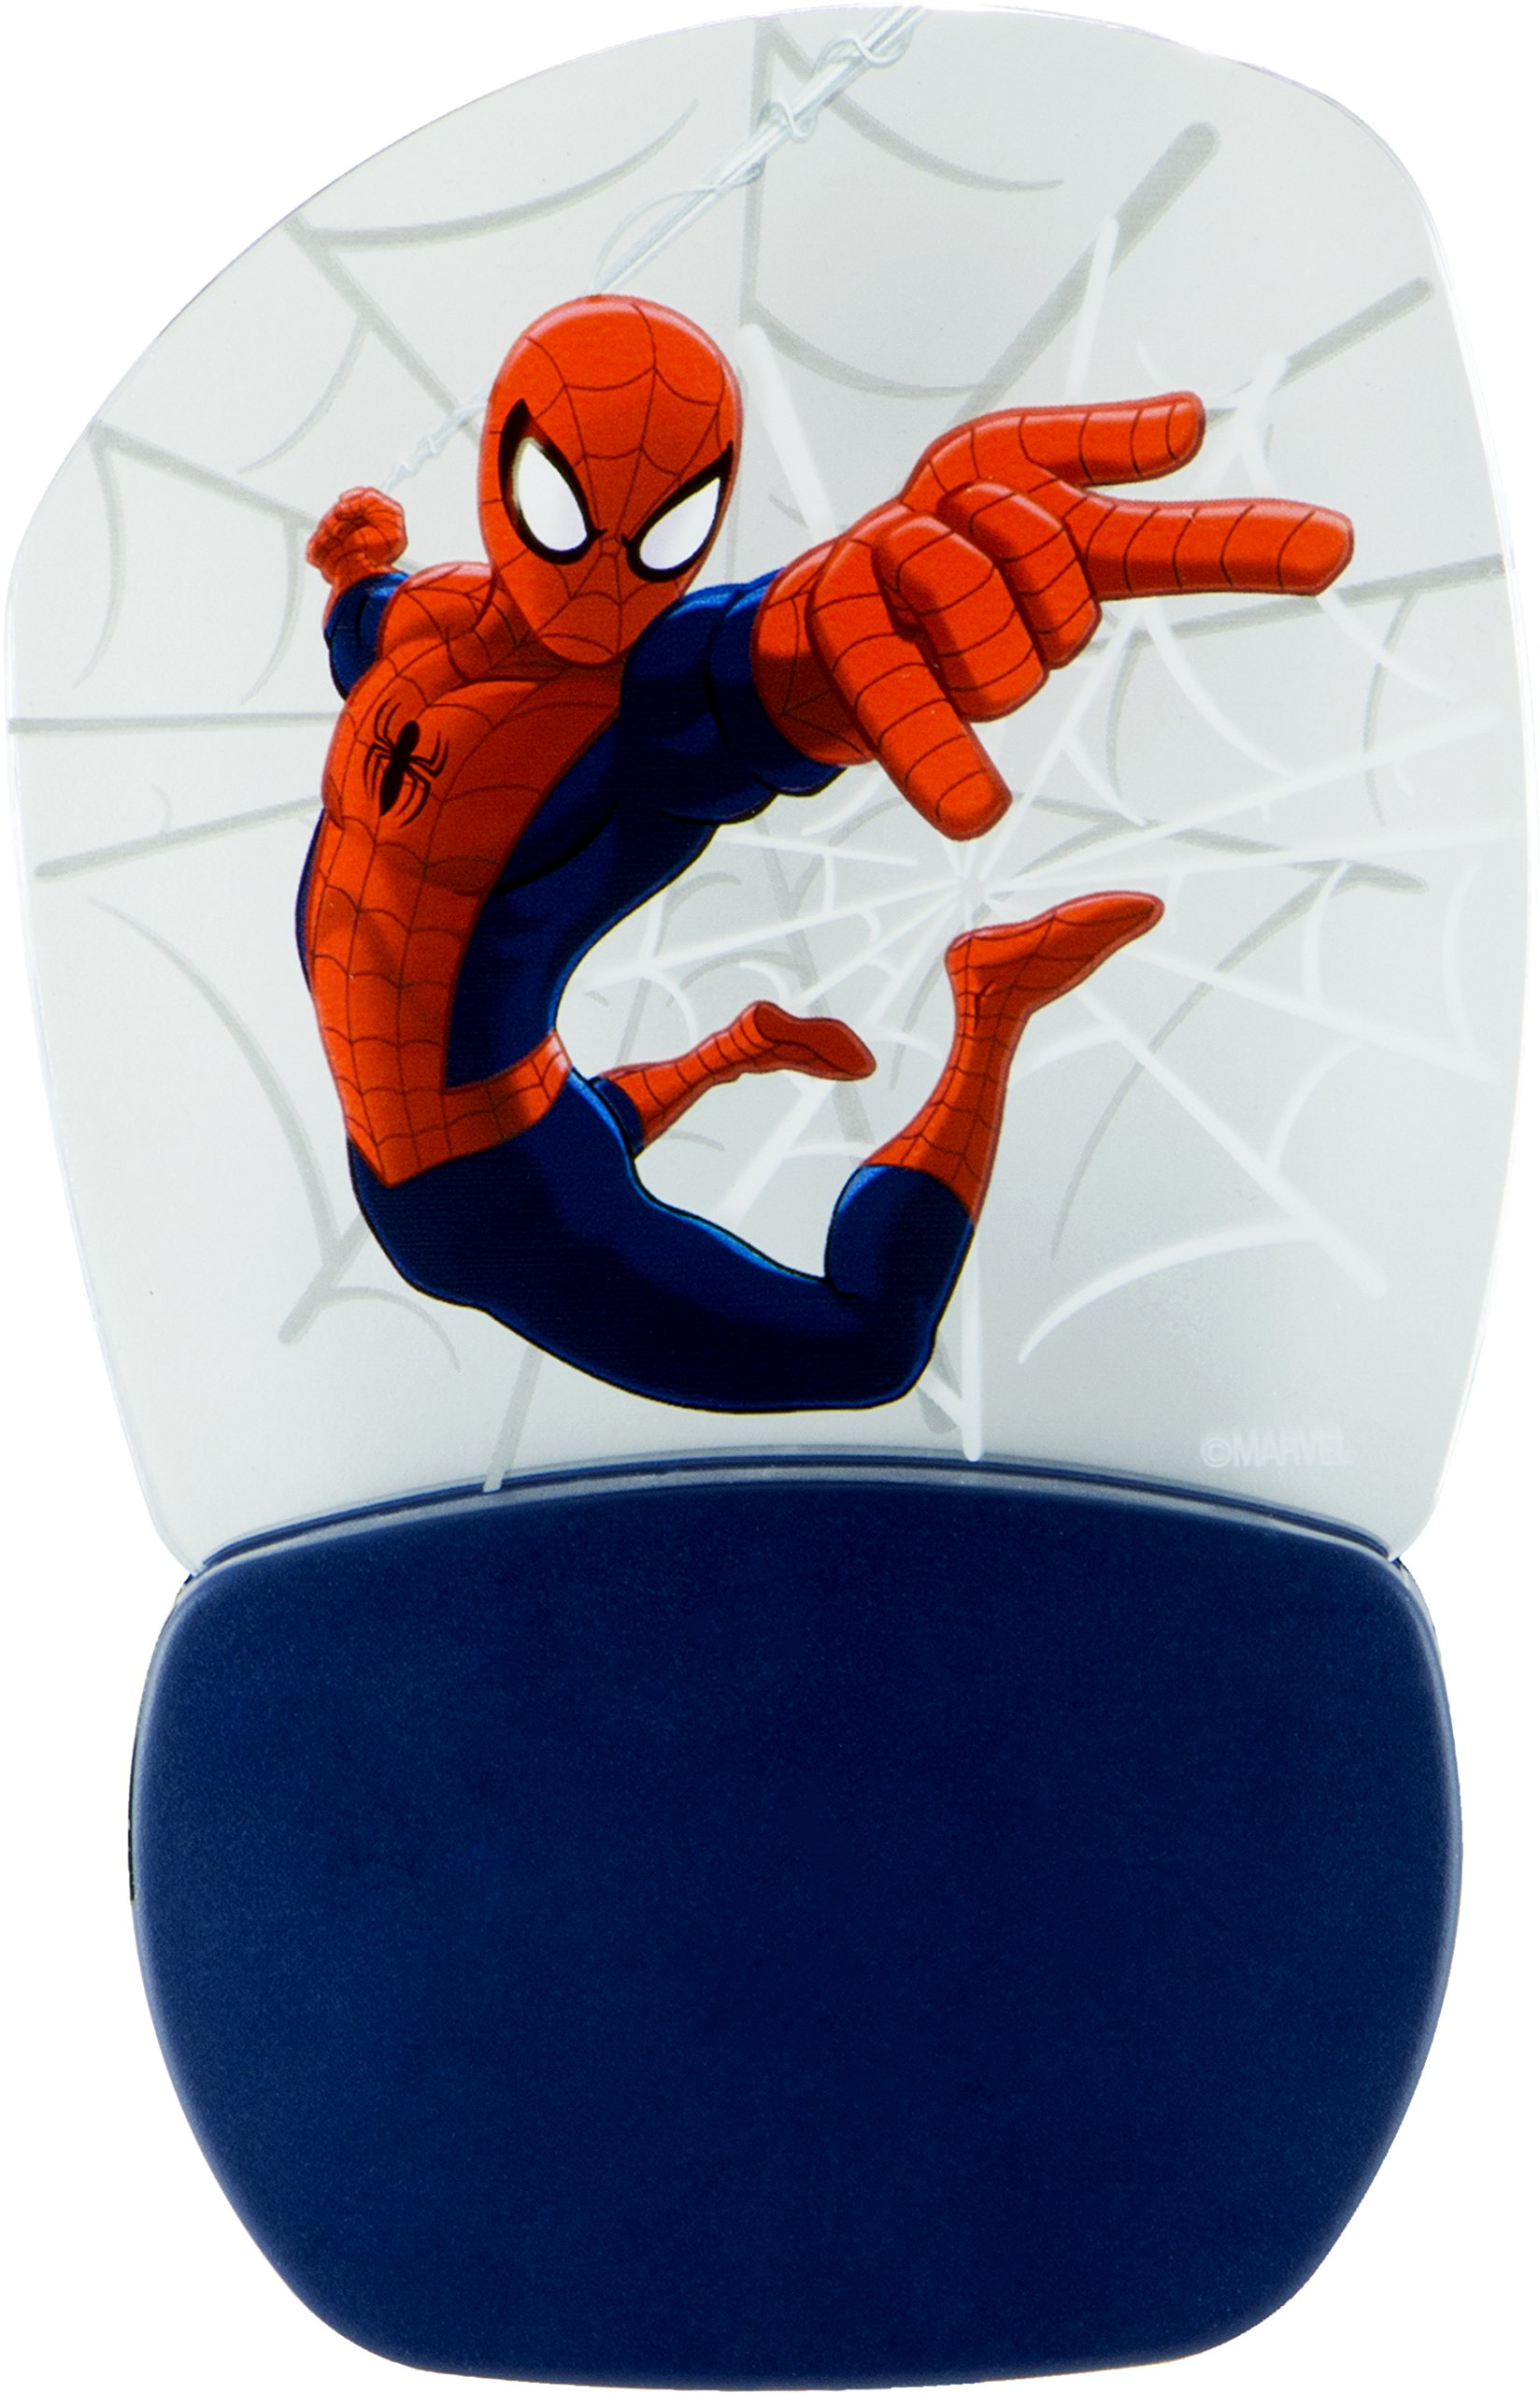 Marvel Ultimate Spider-Man 3D Motion Effect Night Light, Soft White Glow, Light Sensing, Long Life and Low Energy LED, 30271